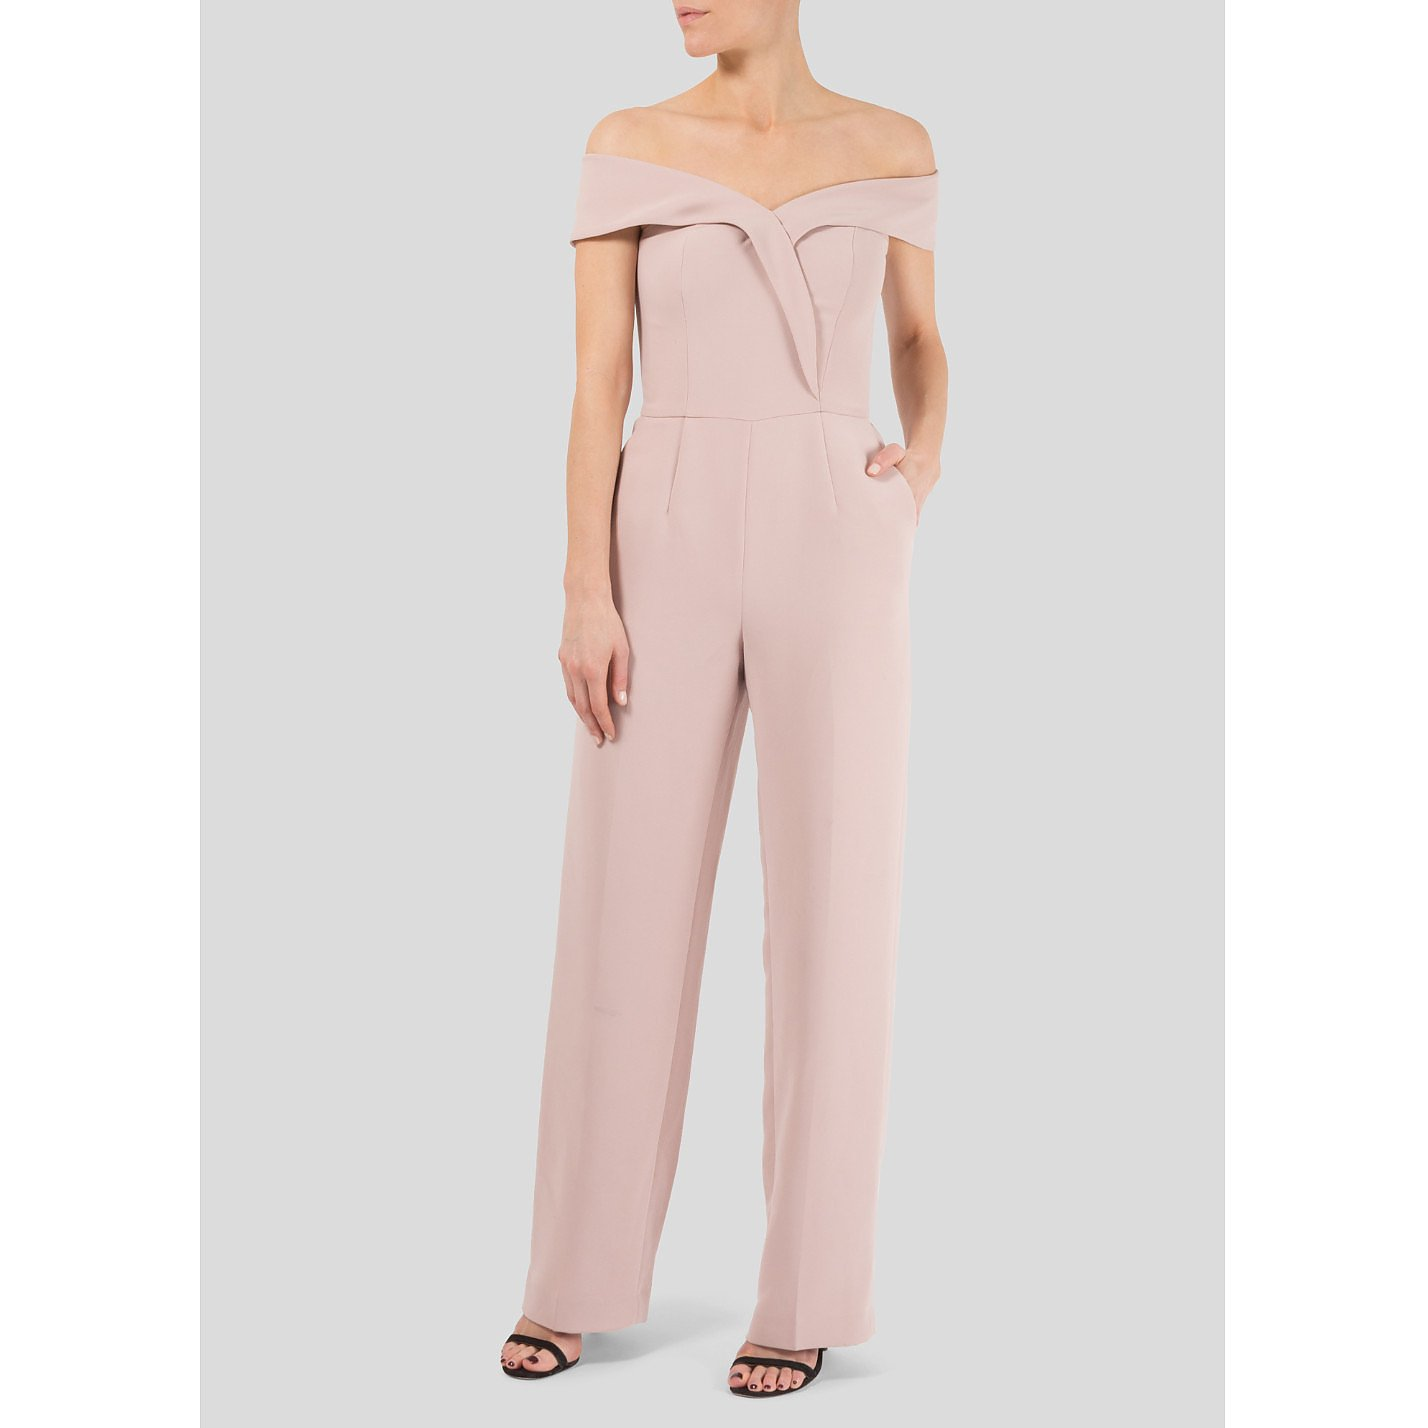 Reiss Off-The-Shoulder Fitted Jumpsuit